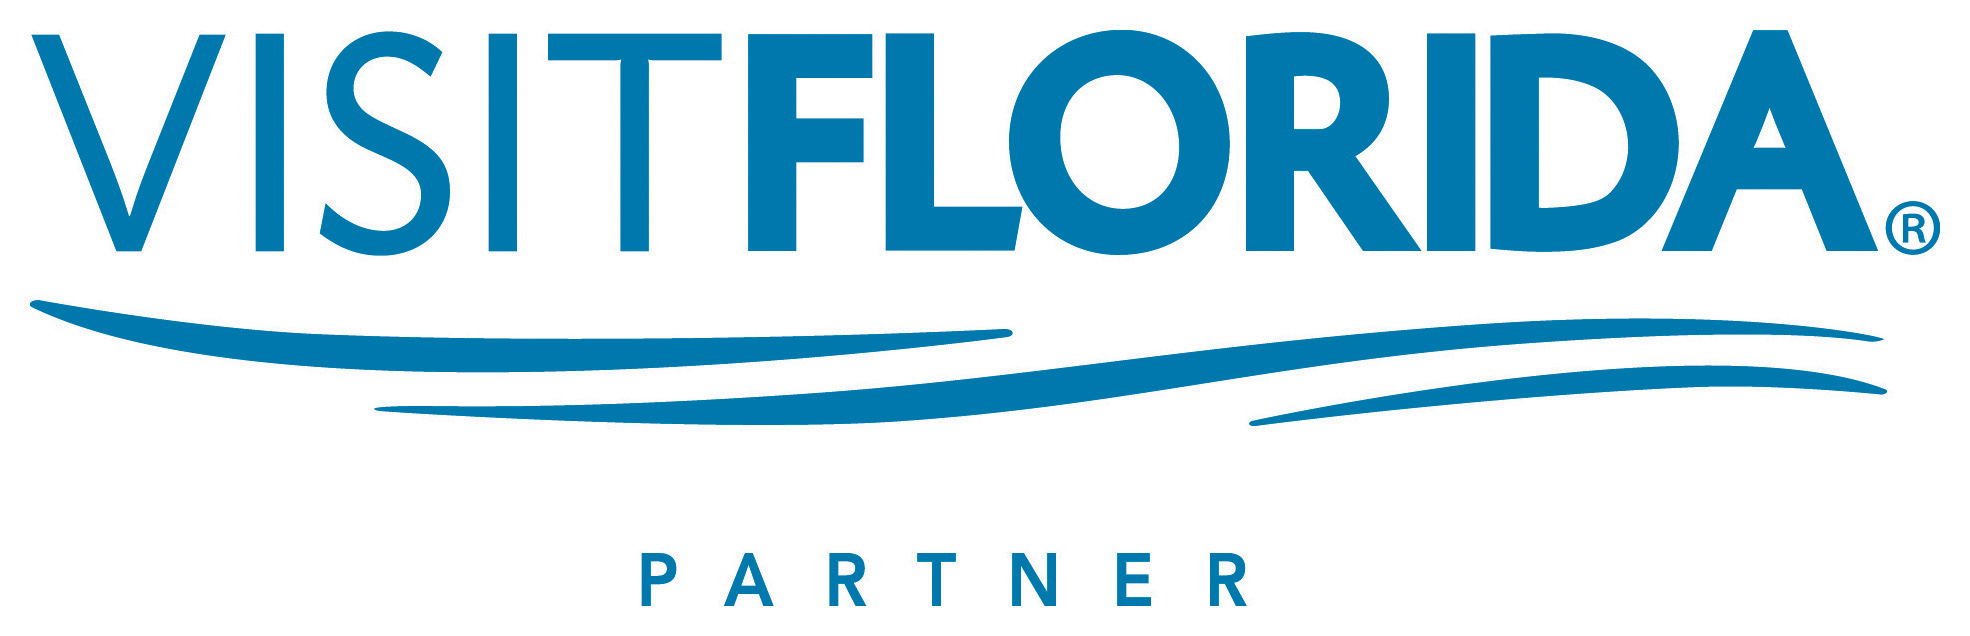 VisitFlorida Partner Logo Blue